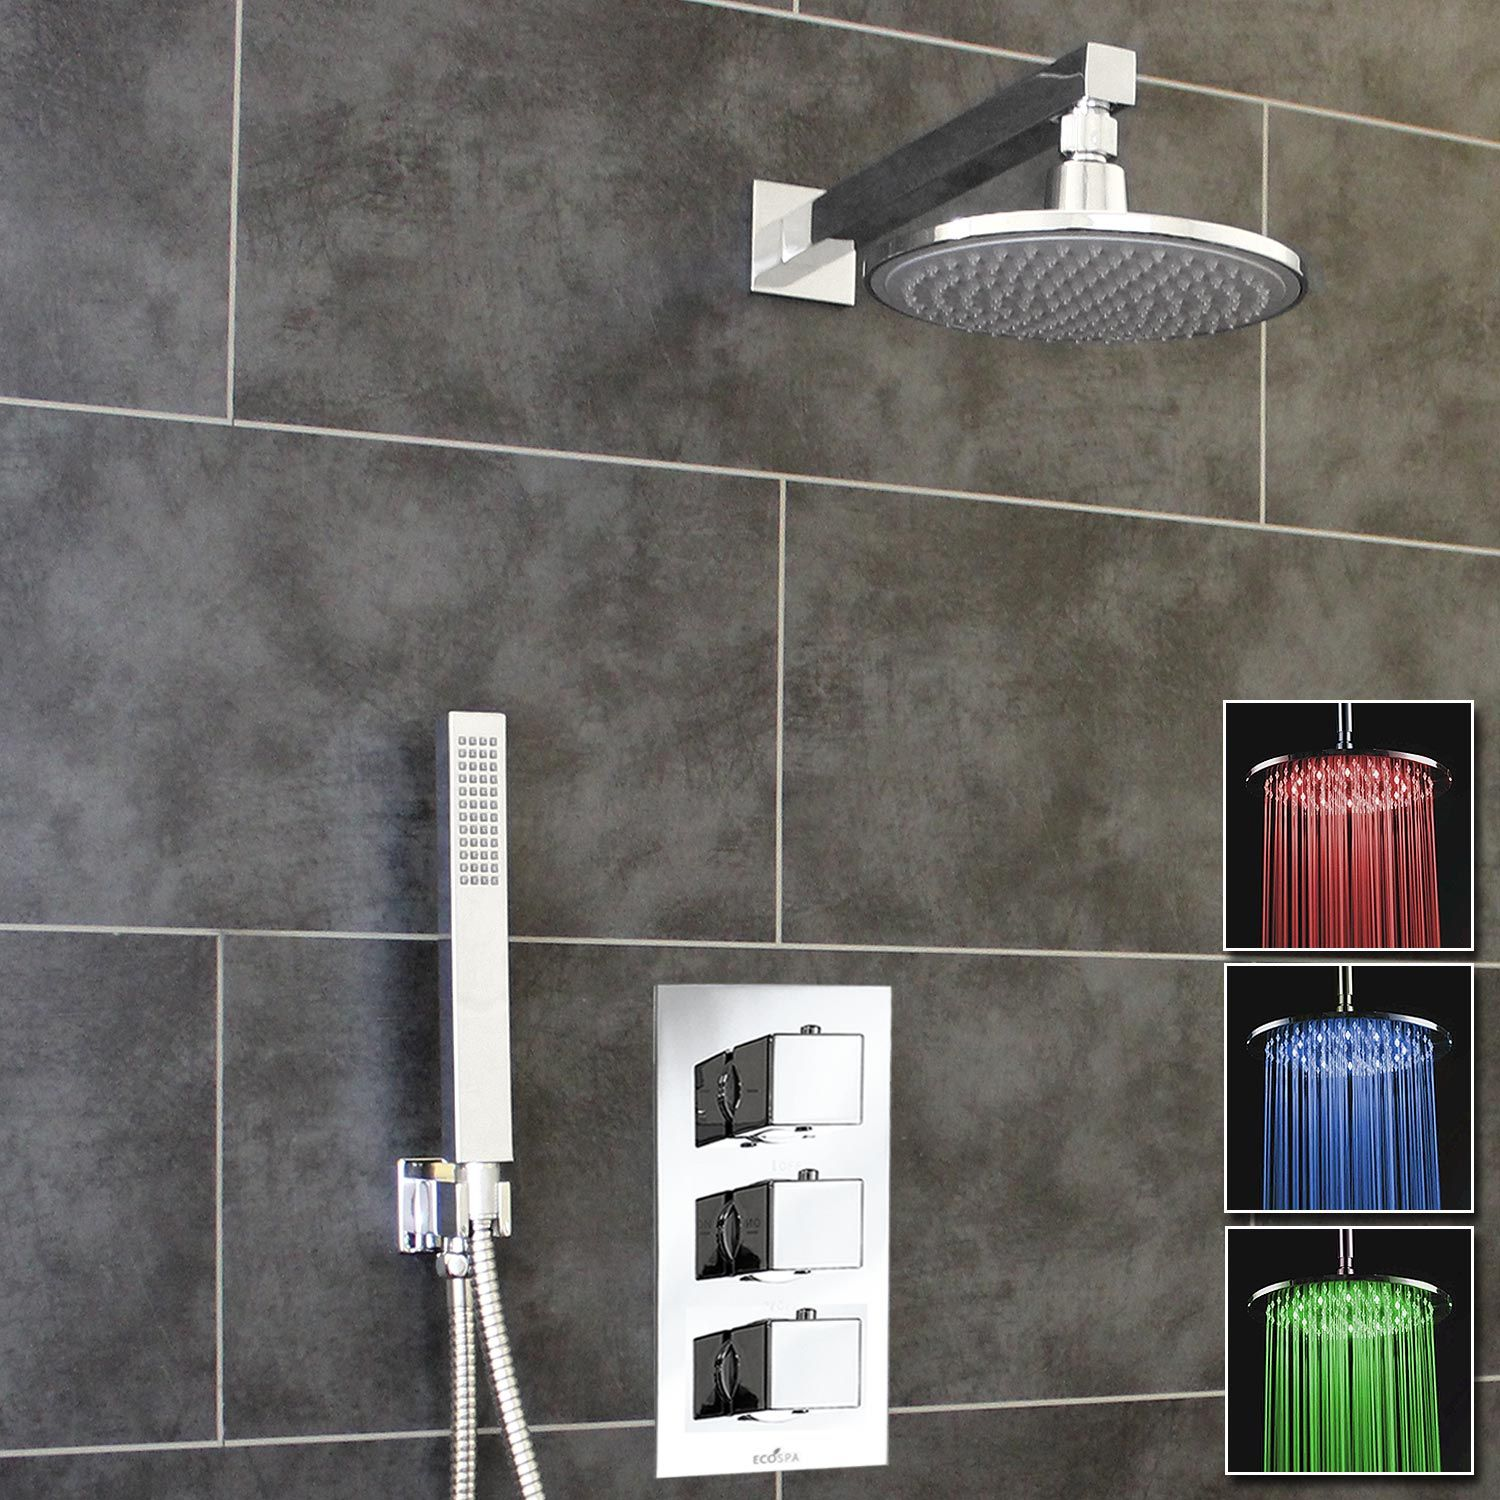 new shower design pin dorfstyle dorf with round ledshower led overhead rail styling head inspiration luminous bathroom